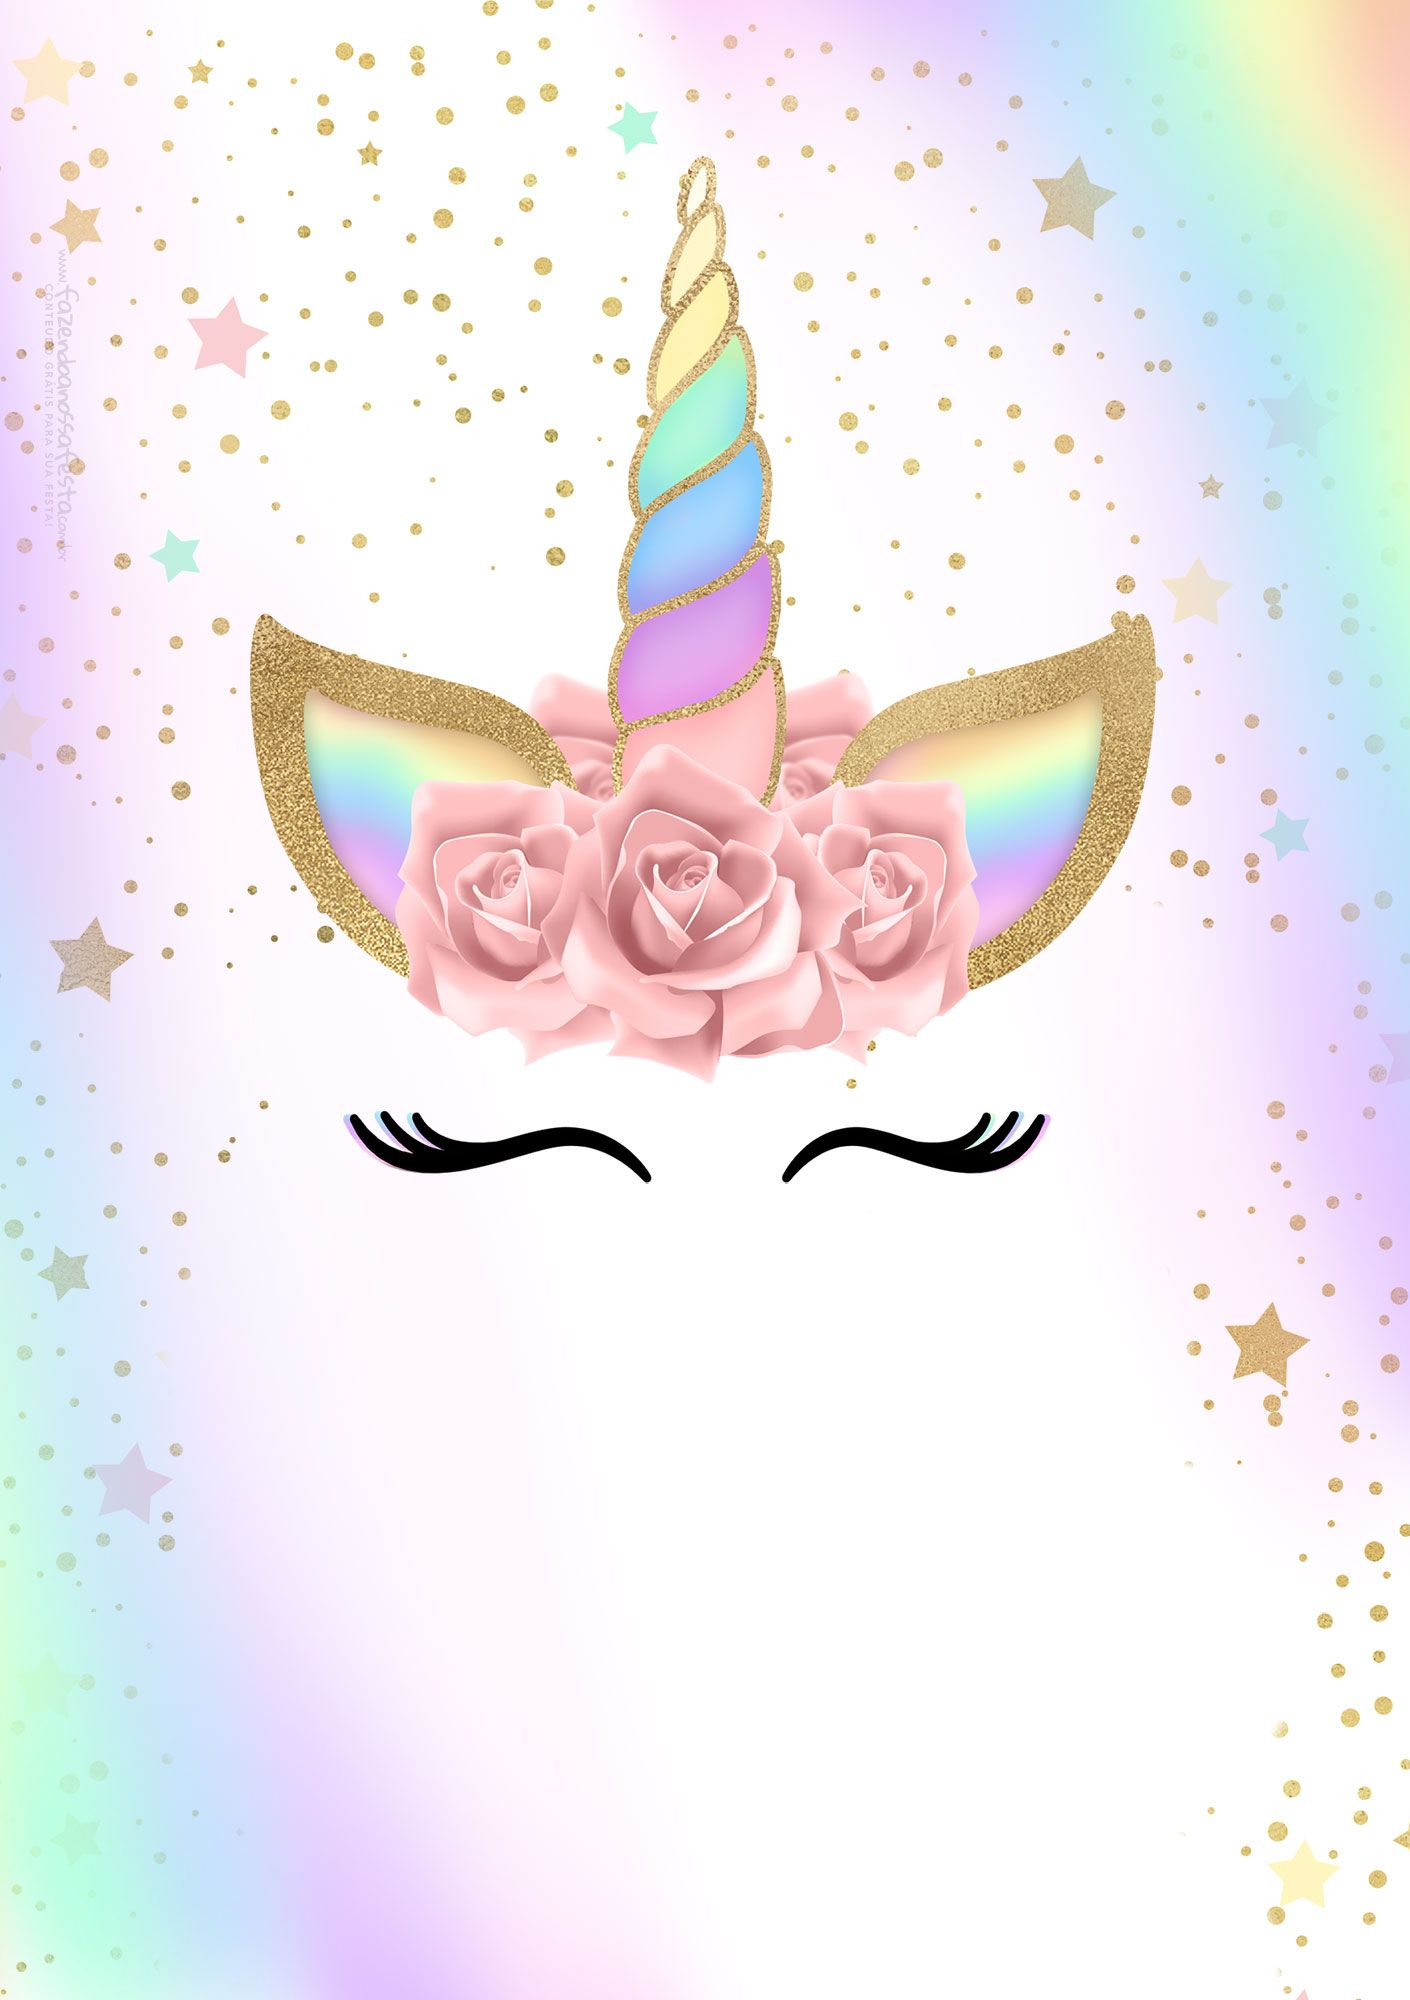 Convite Unicornio Gratis 2 Fiesta Unicornio Unicorn Party